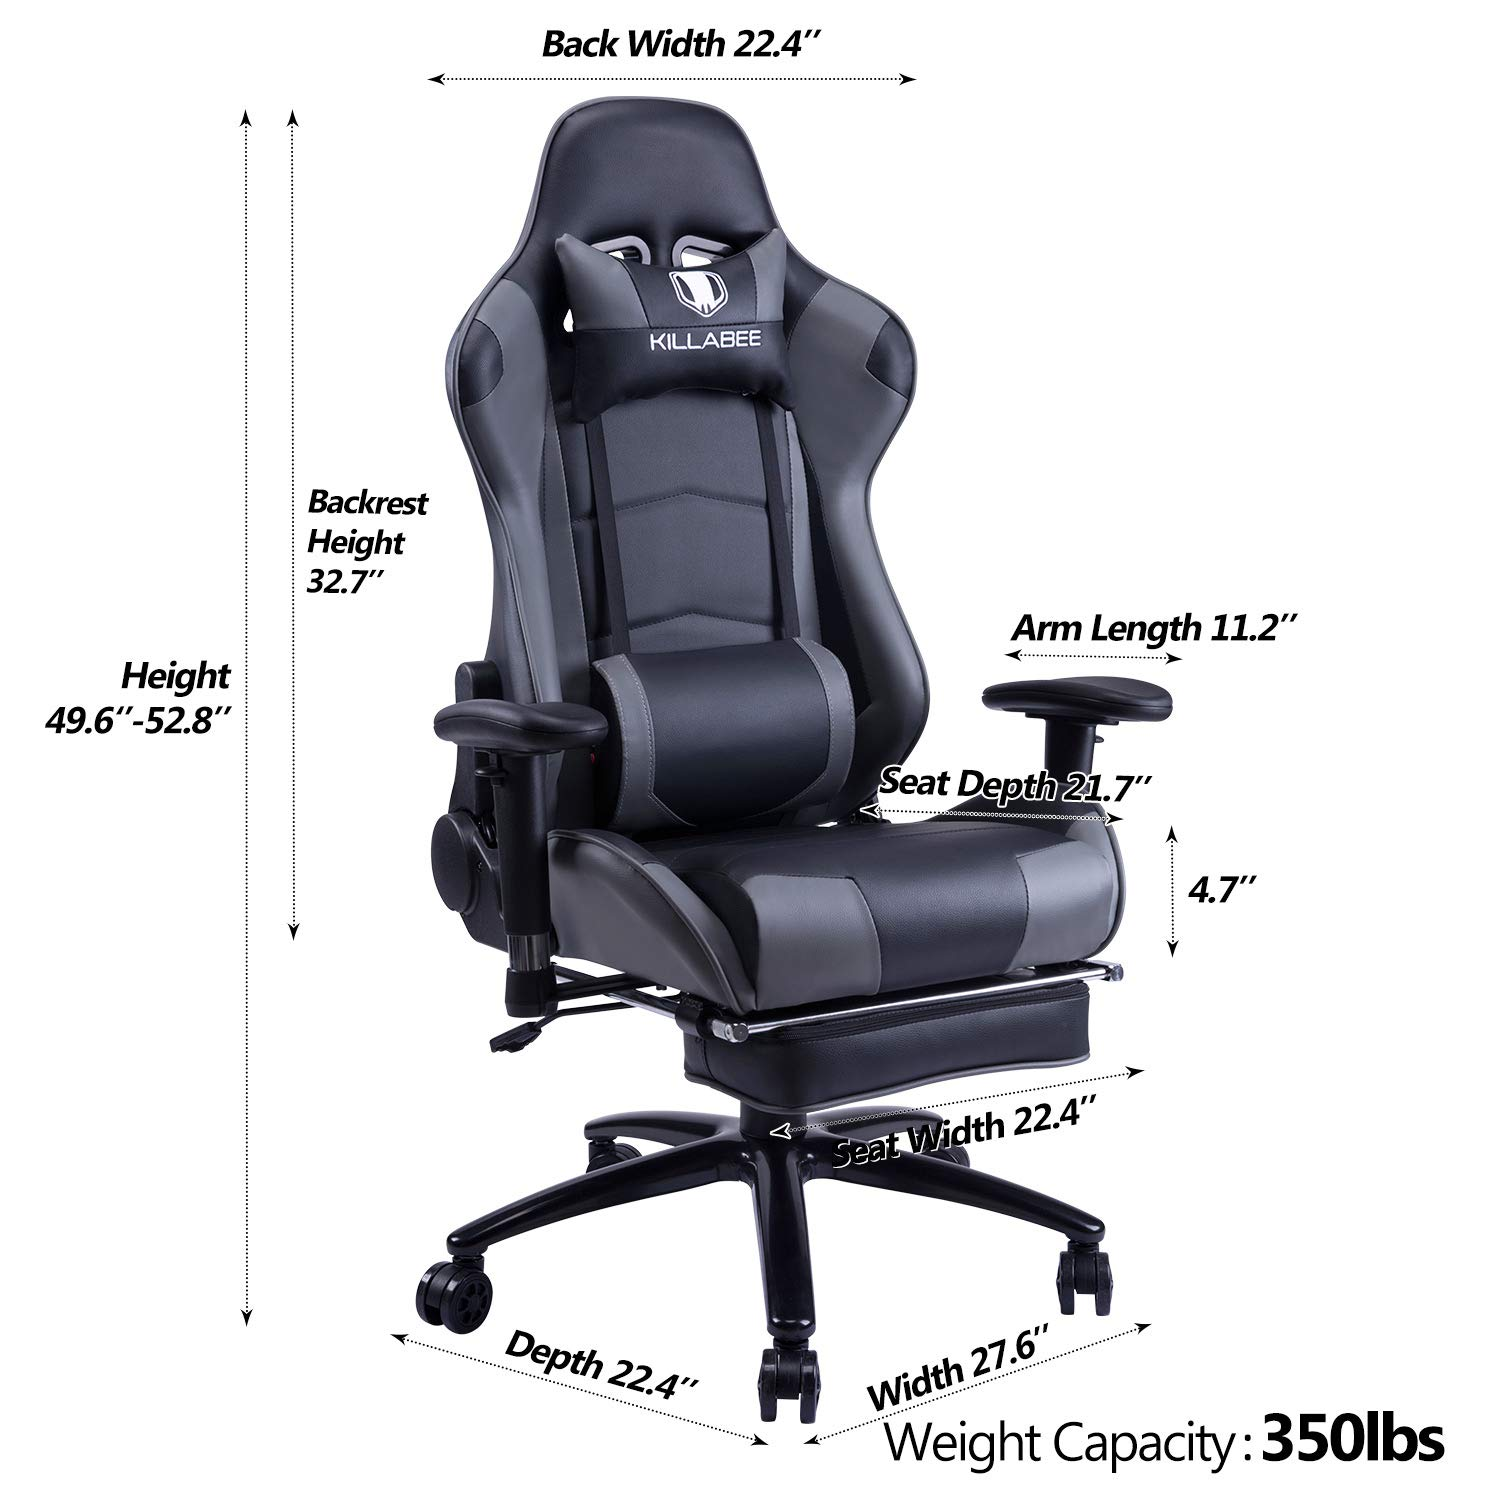 KILLABEE Big and Tall 350lb Massage Gaming Chair Metal Base - Adjustable Massage Lumbar Cushion, Retractable Footrest High Back Ergonomic Leather Racing Computer Desk Executive Office Chair by KILLABEE (Image #5)